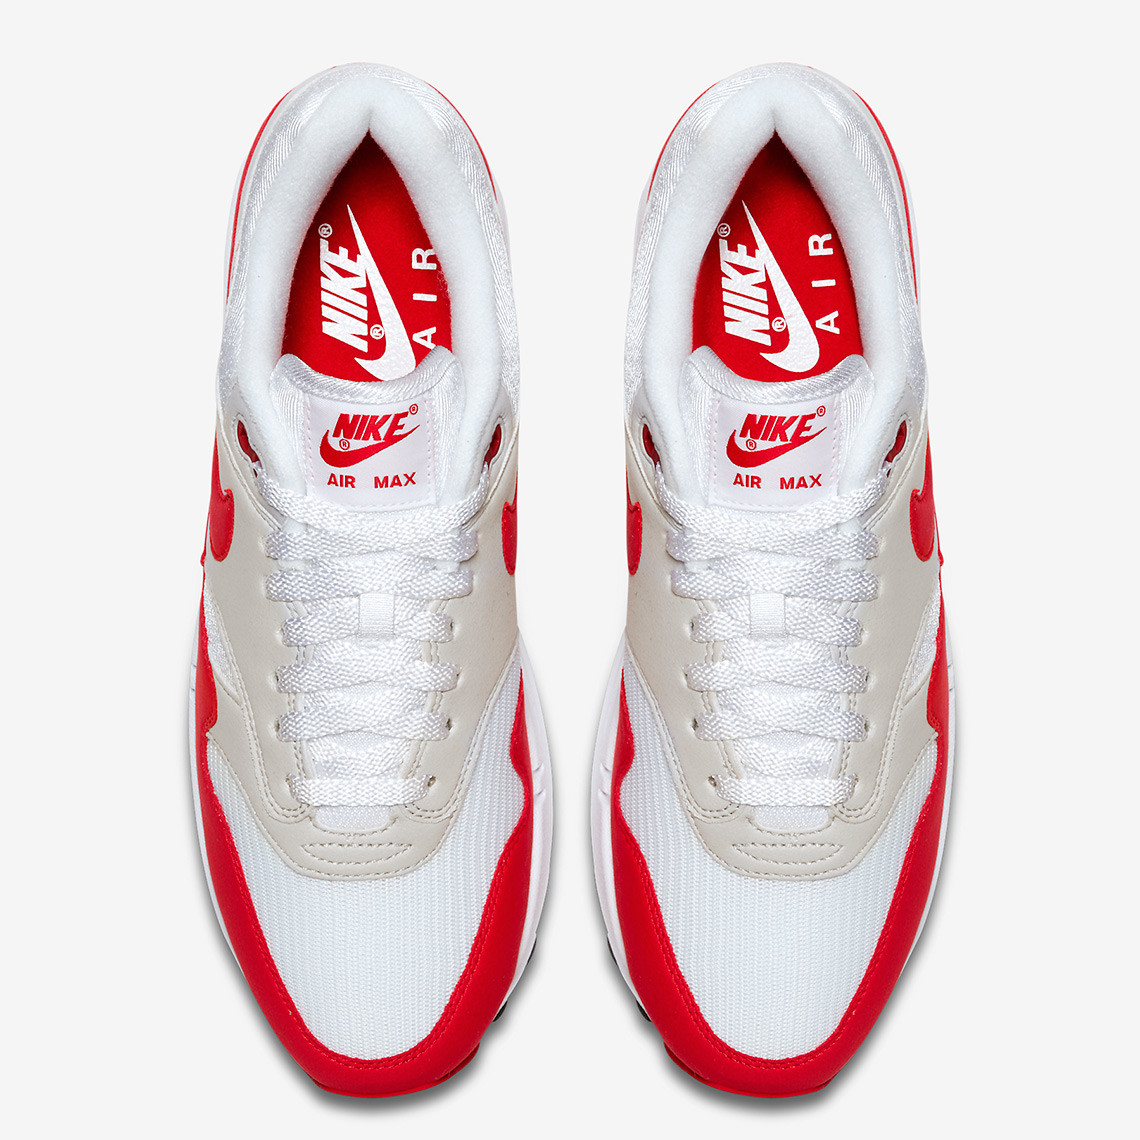 timeless design cd854 6a0cb Pick up the OG Nike Air Max 1 Anniversary over at Nike.com and select NSW  stockists starting November 16. Refresh your memory on what the shoe looks  like by ...